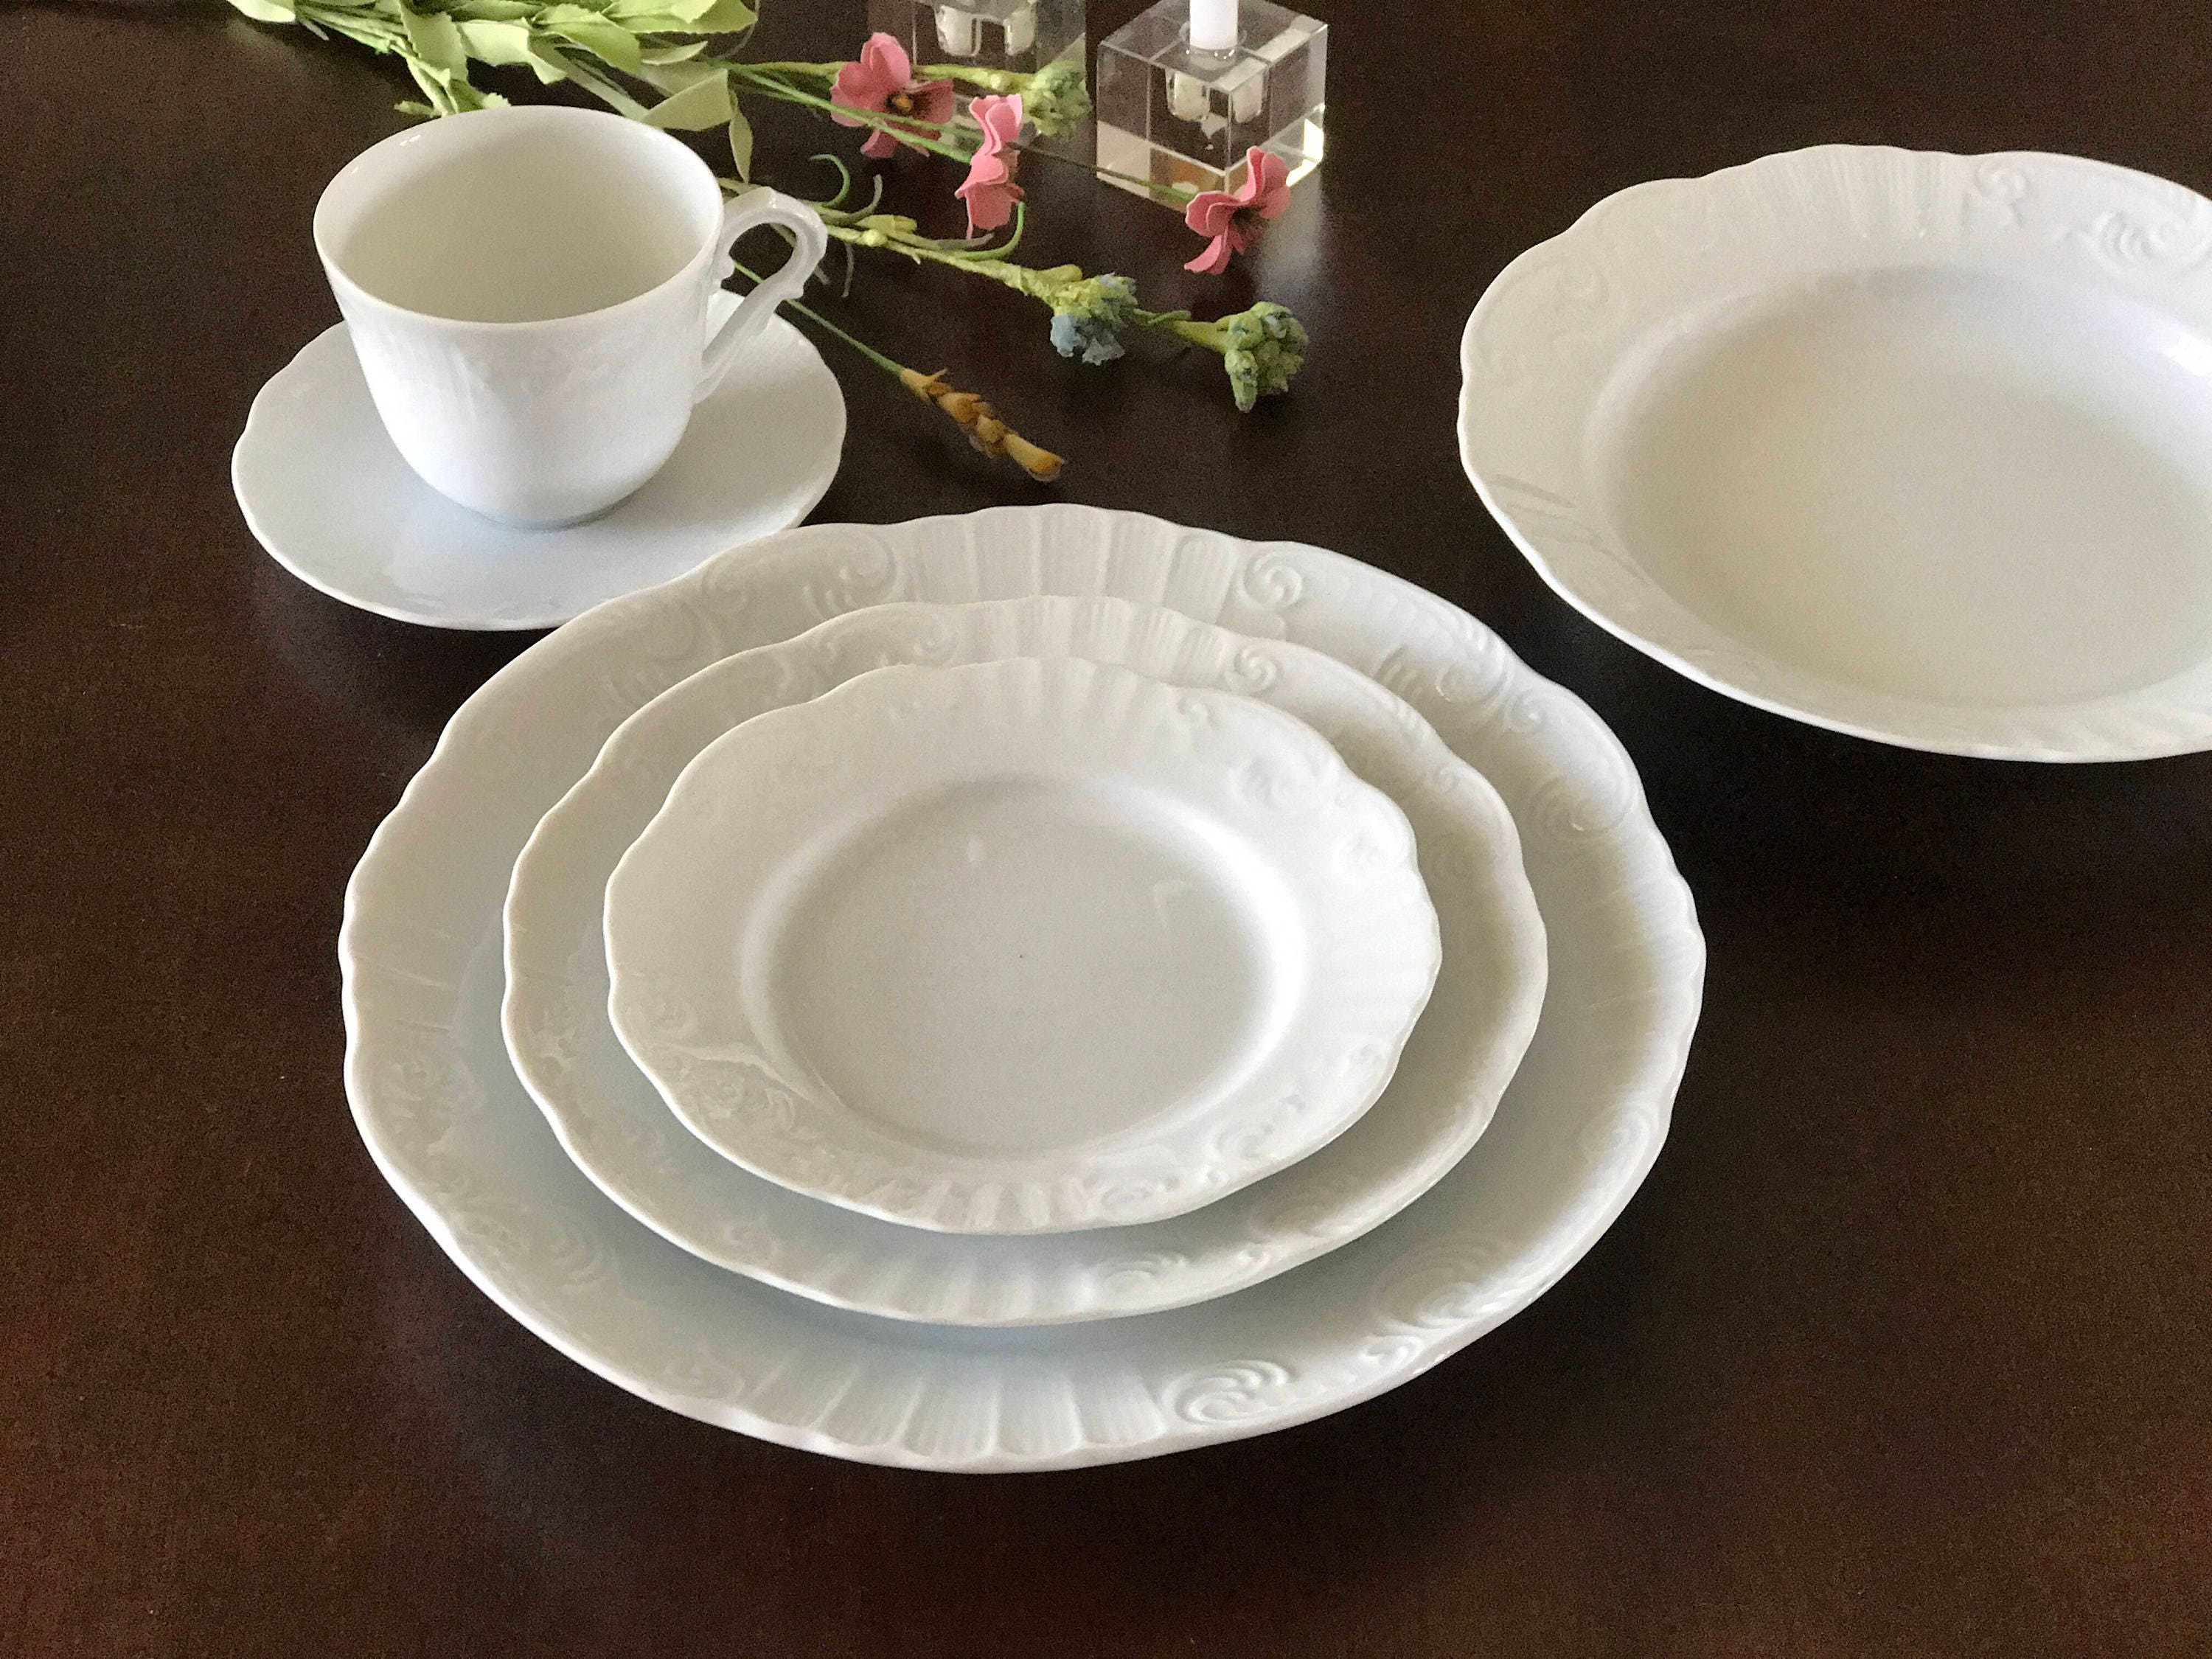 42 Piece Fine Porcelain Dinnerware Set; Vista Alegre Manueline White made in Portugal : dinnerware made in portugal - pezcame.com